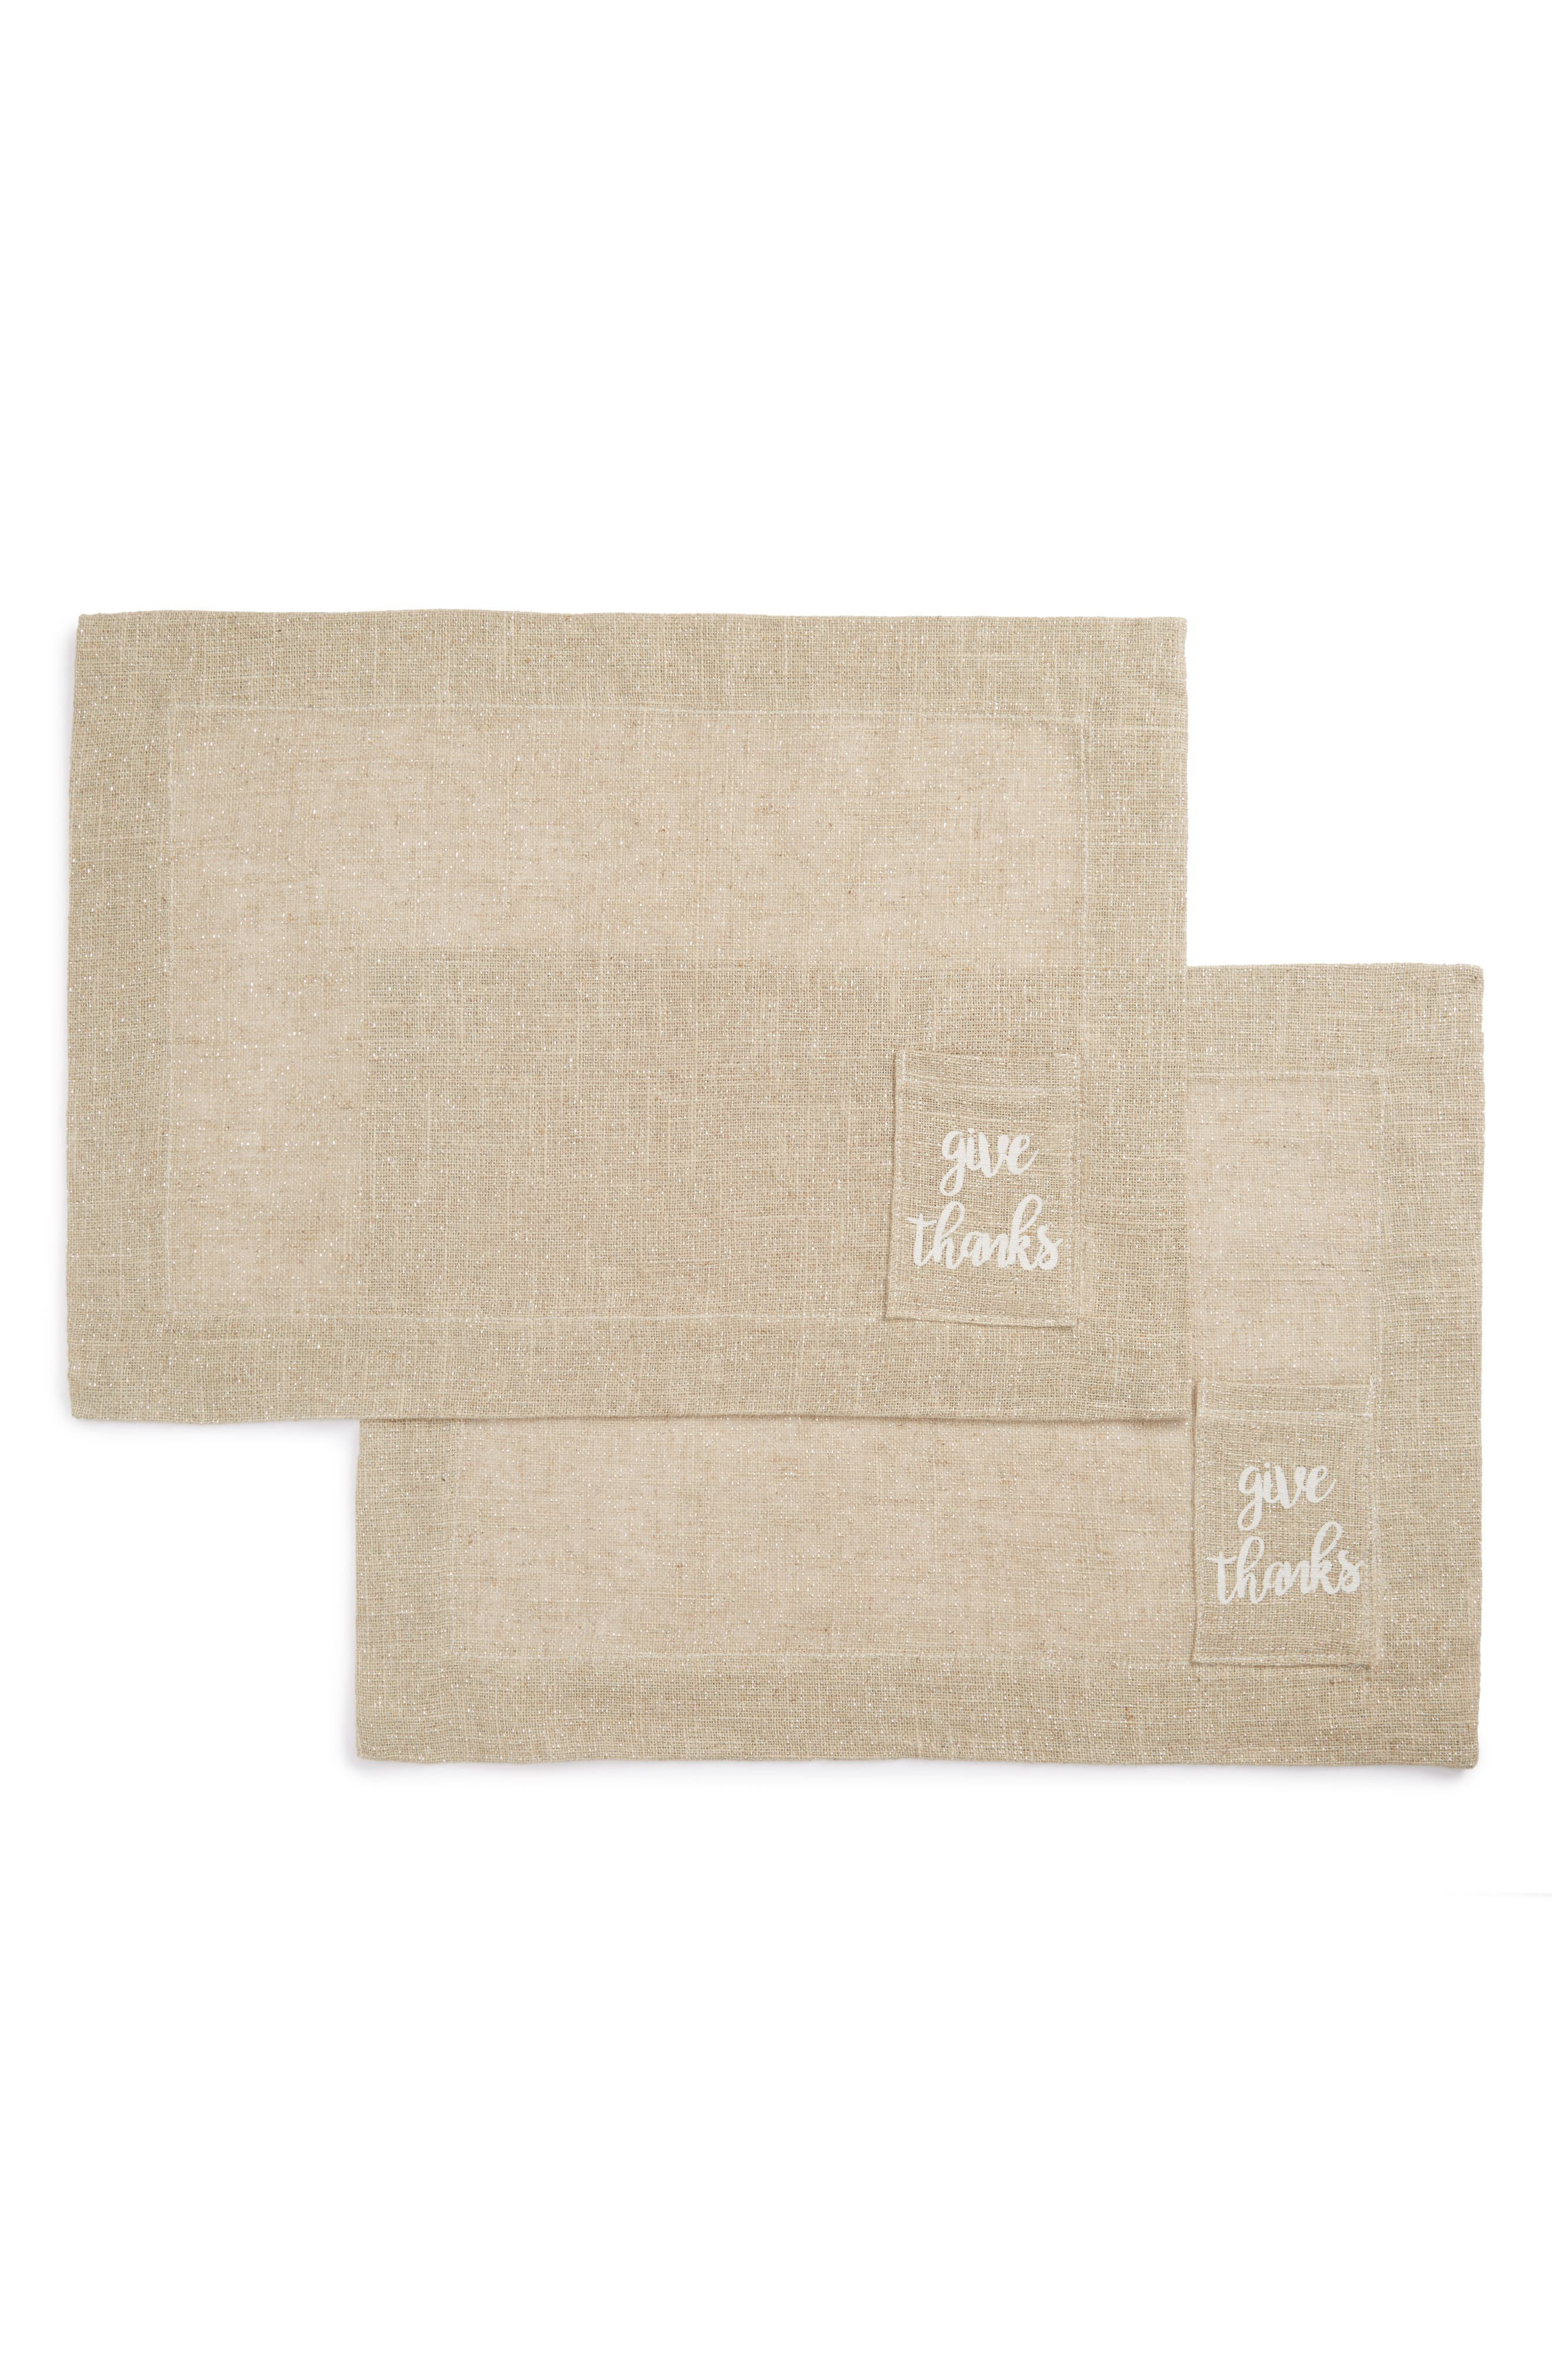 Give Thanks Set of 2 Placemats,                         Main,                         color, Natural